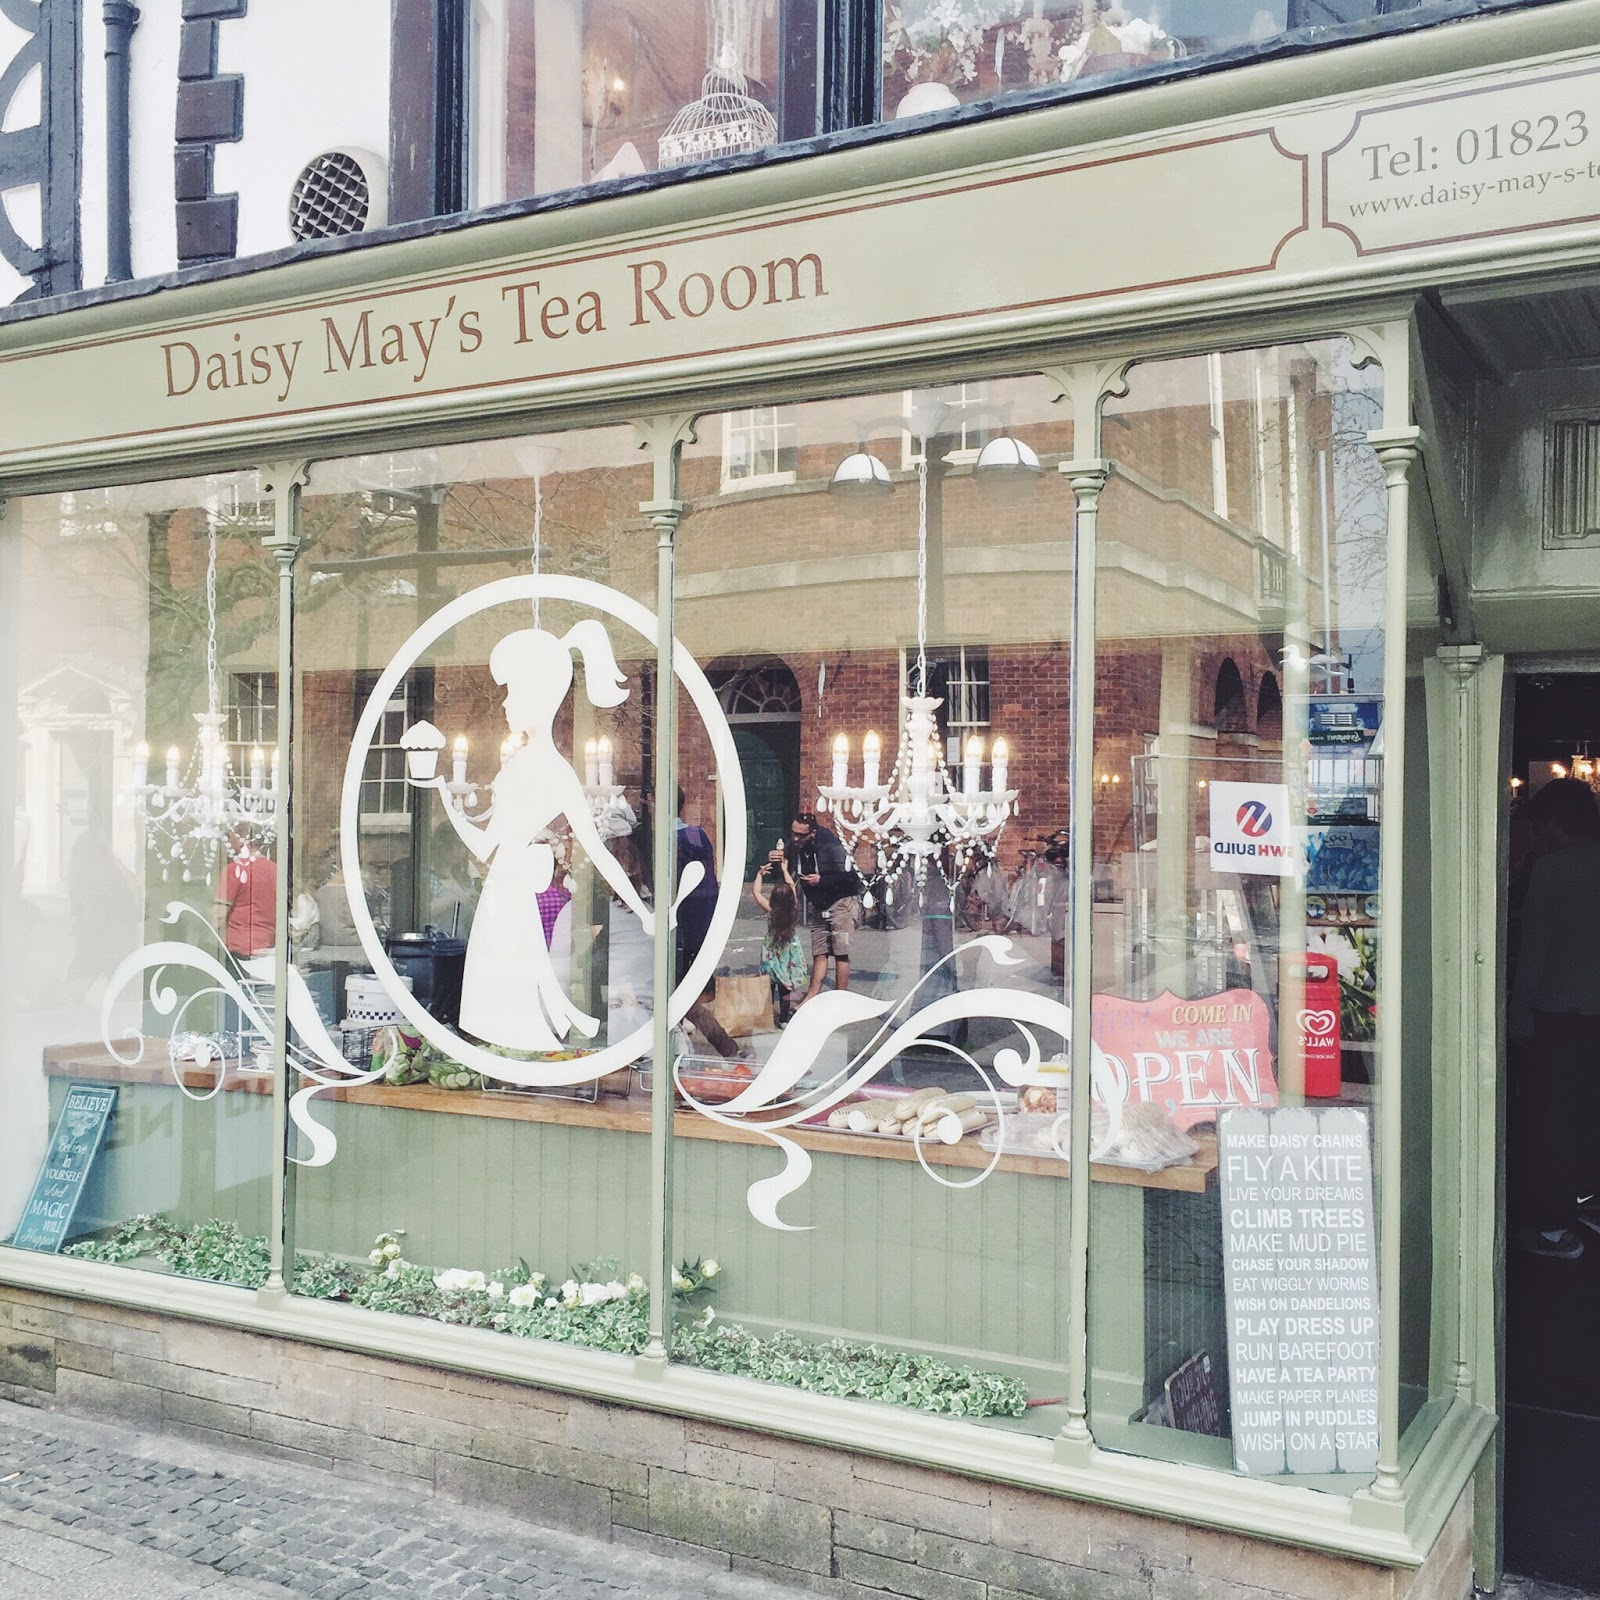 afternoontea, taunton, cake, creamteas, dayout, fbloggers, kitch, lbloggers, retro, sandwiches, tea, thingstodo, thingstodointaunton, daisymaystearoom, daisymaystearoomreview, halcyonvelvet